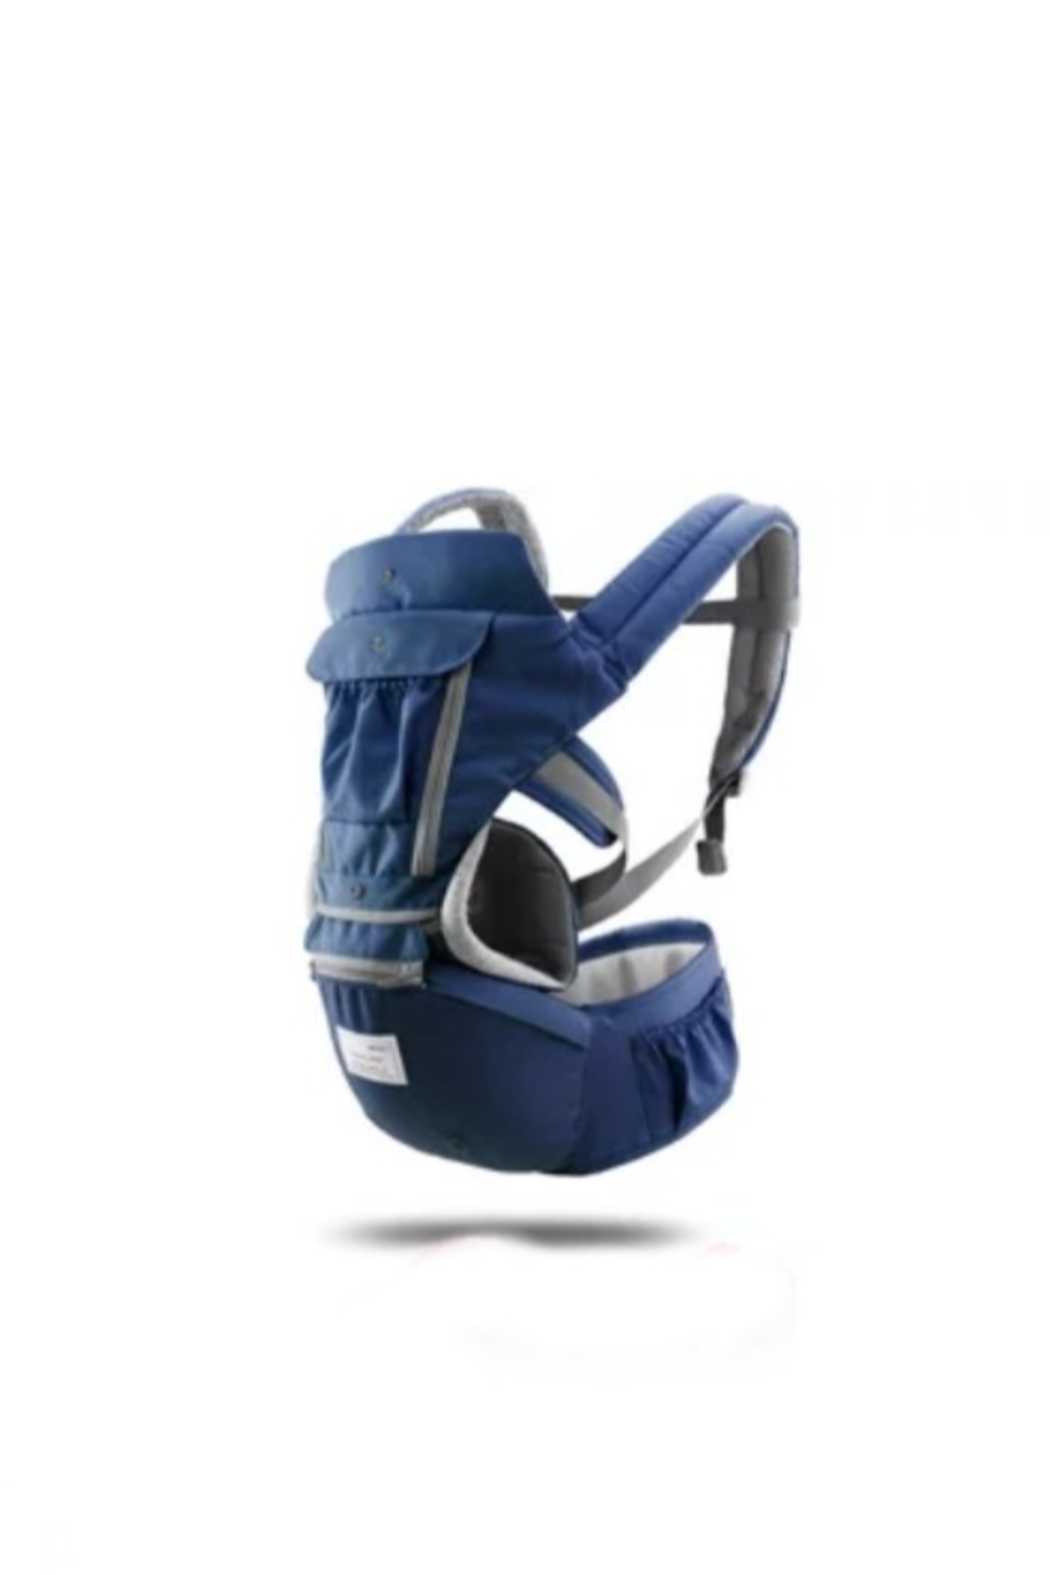 Aiebao Baby Carrier - Main Image